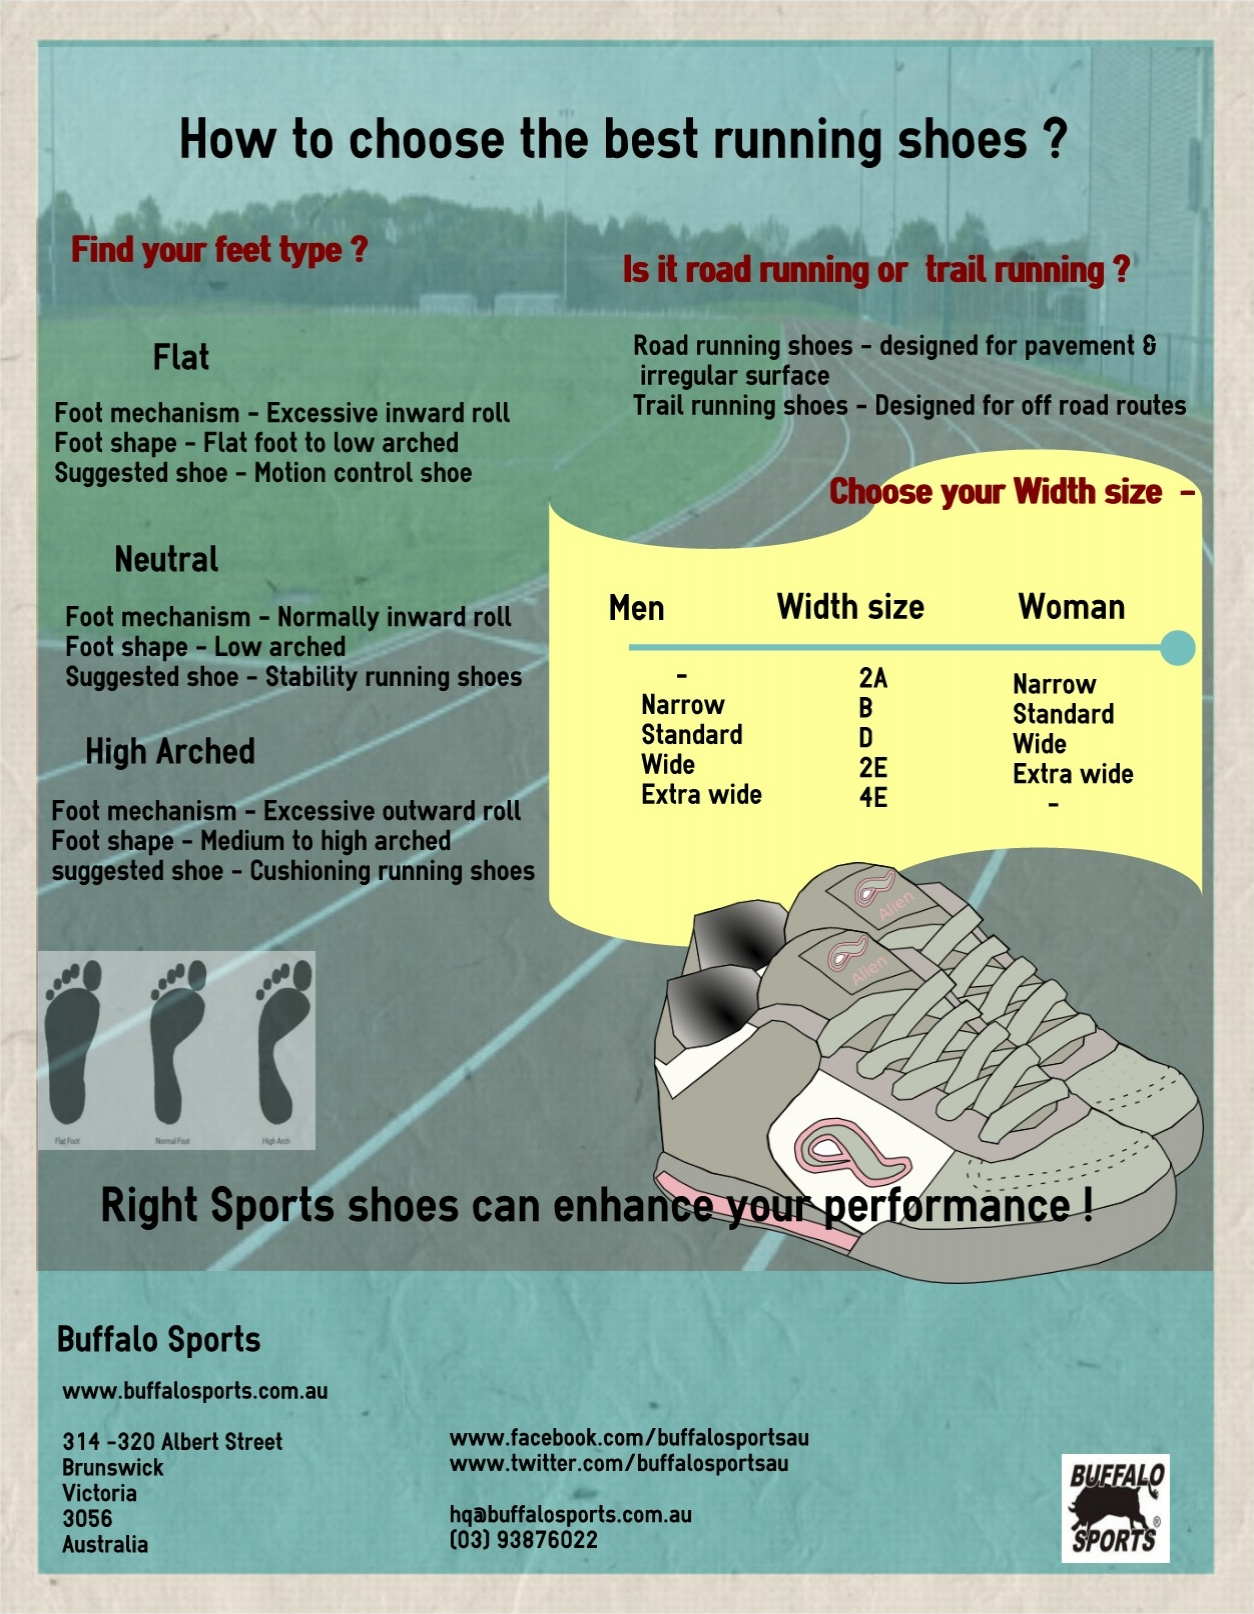 Buffalo Sports | How to choose the best running shoes ? | Visual.ly